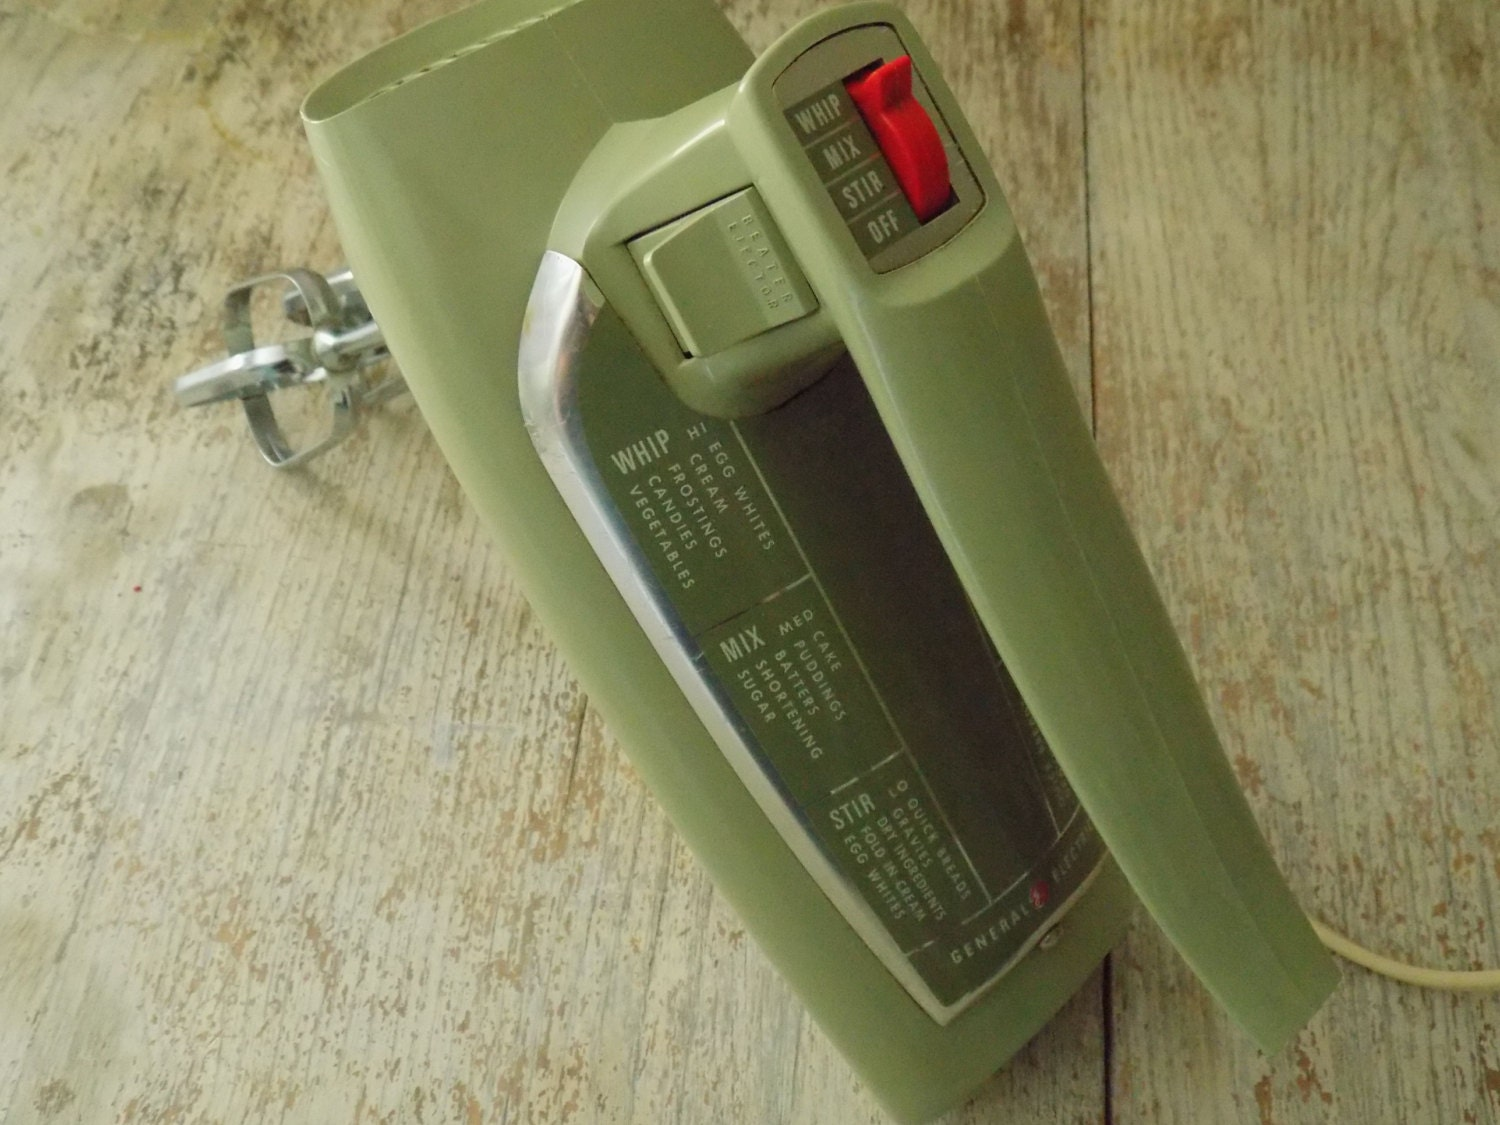 Vintage general electric green hand mixer d4m47 avacado for General electric mixer vintage